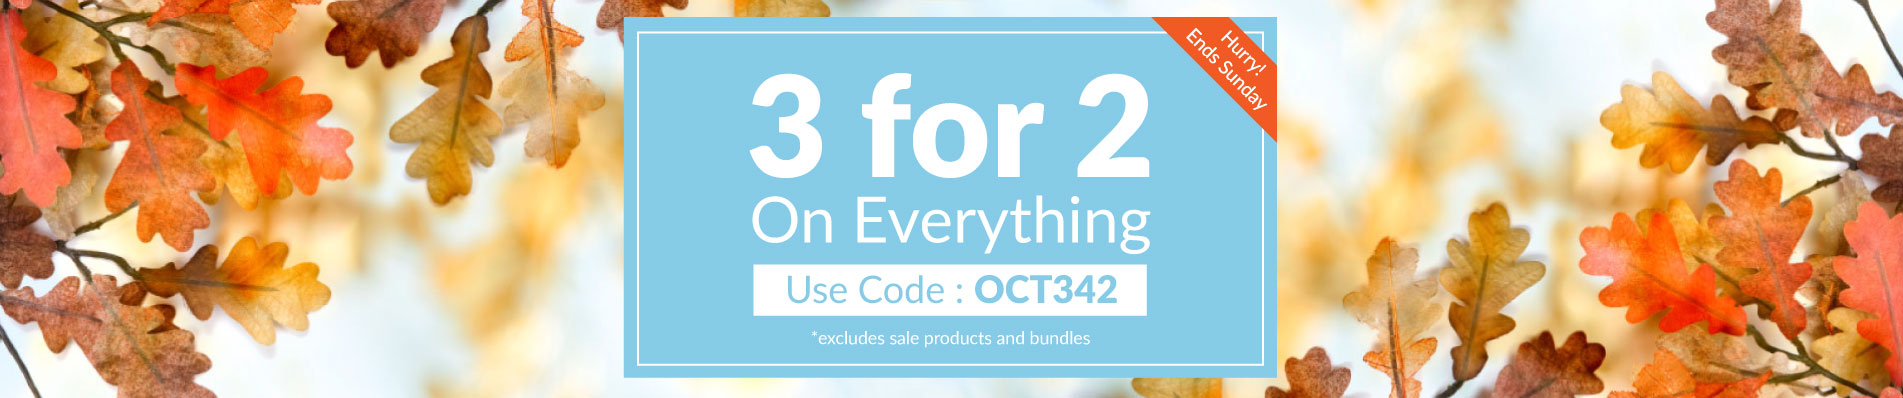 3 for 2 on everything with code OCT342